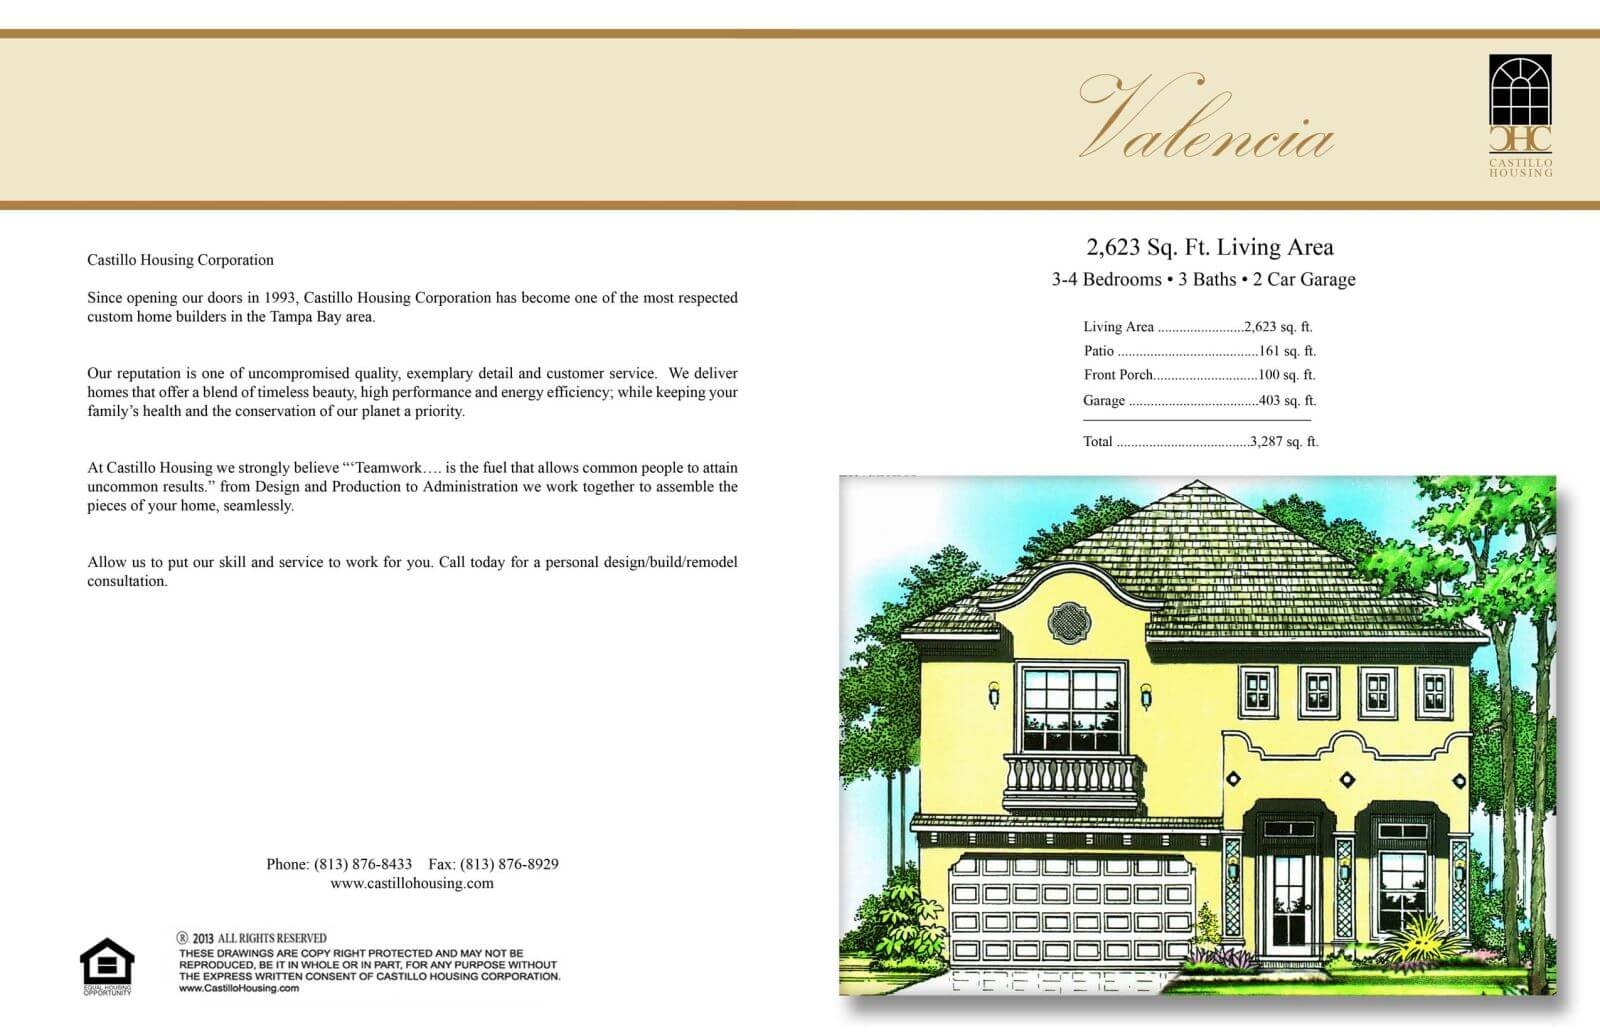 Floor Plans,2,501 SQ FT TO 3,000 SQ FT,1048